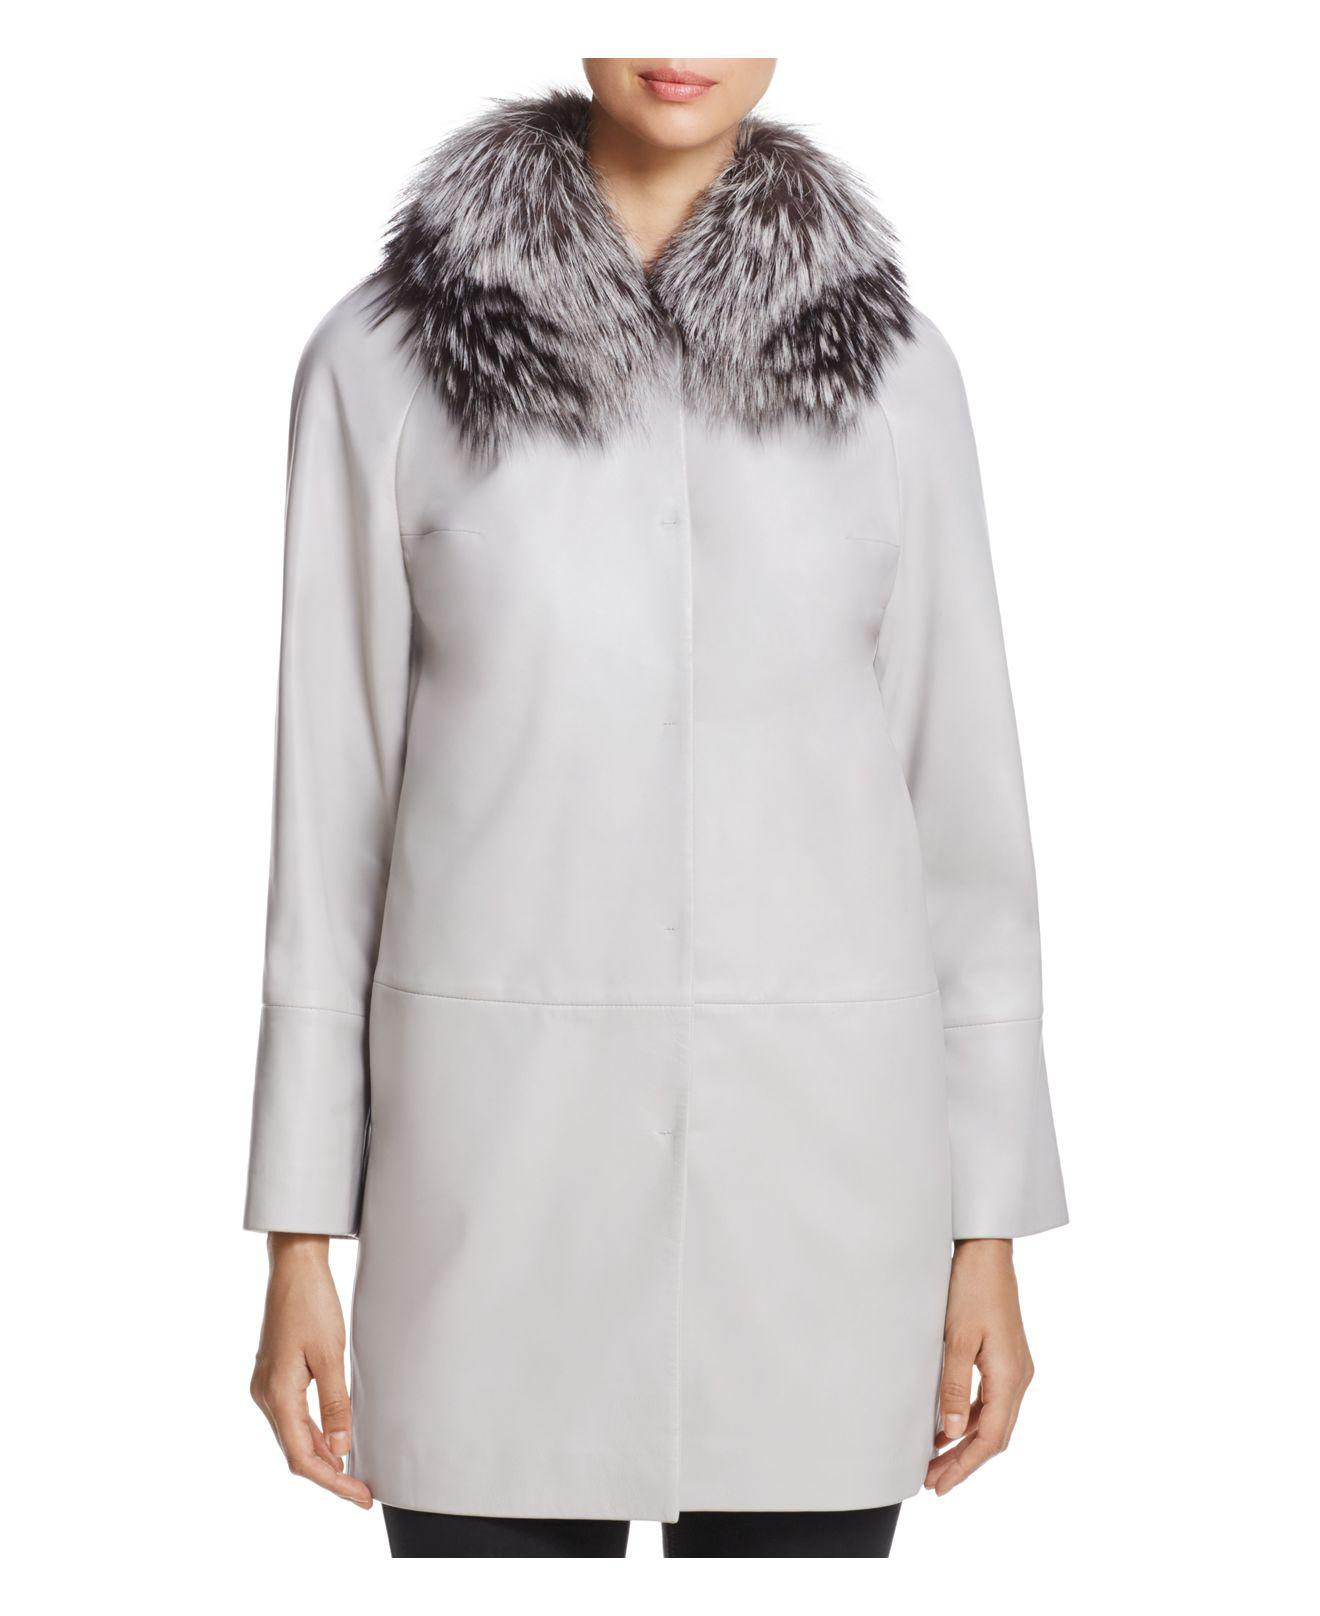 Maximilian Fox Fur-collar Leather Jacket in Natural